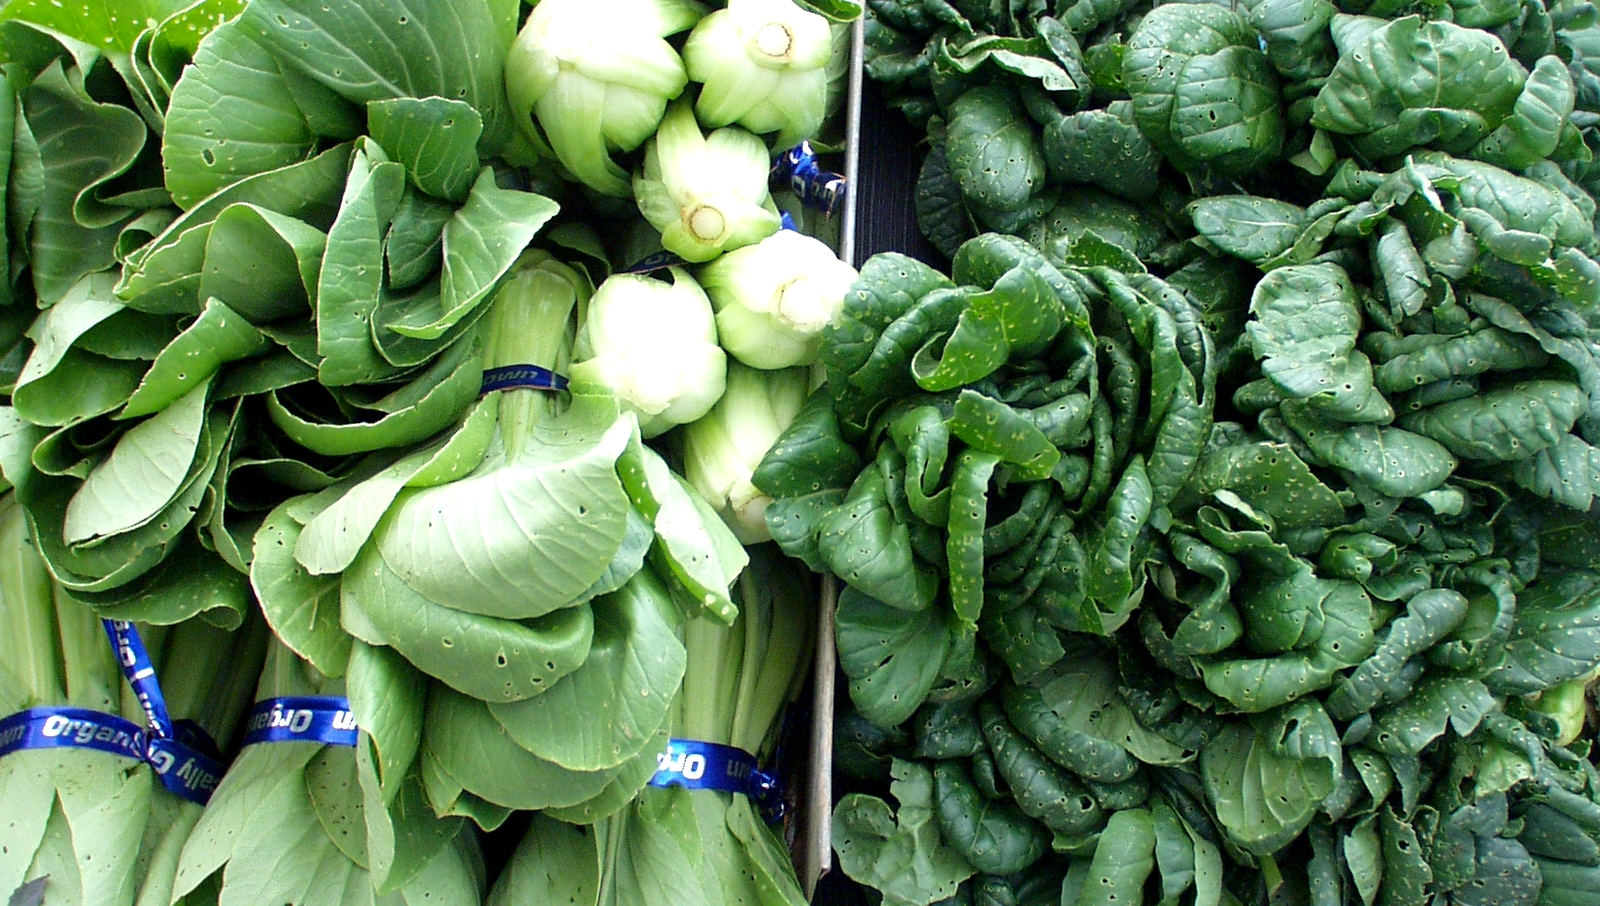 Boistfort Valley bok choi and tatsoi. Photo copyright 2009 by Zachary D. Lyons.